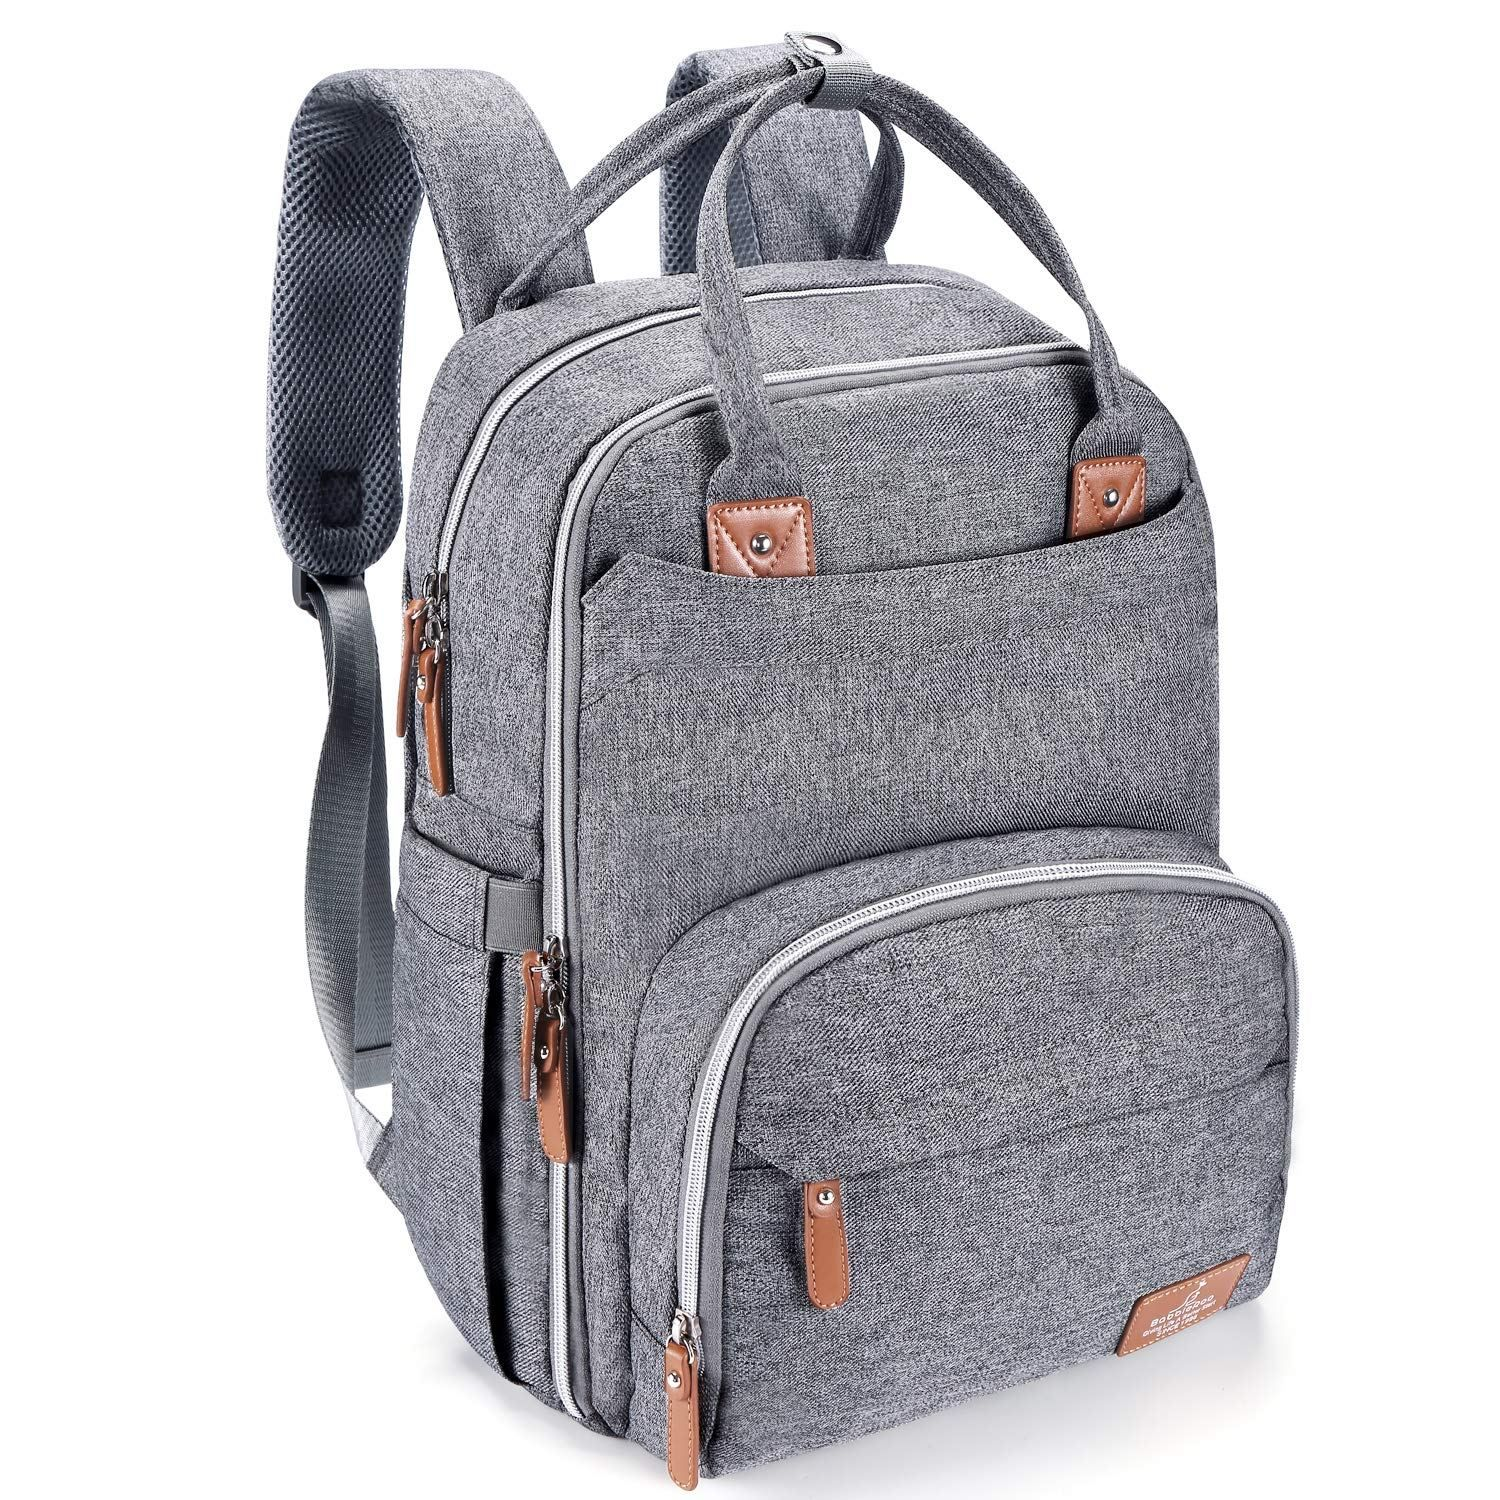 Diaper Bag for Men Dad Nappy Bag Backpack Large Canvas Waterproof USB Mommy Bag for Baby Care Travel